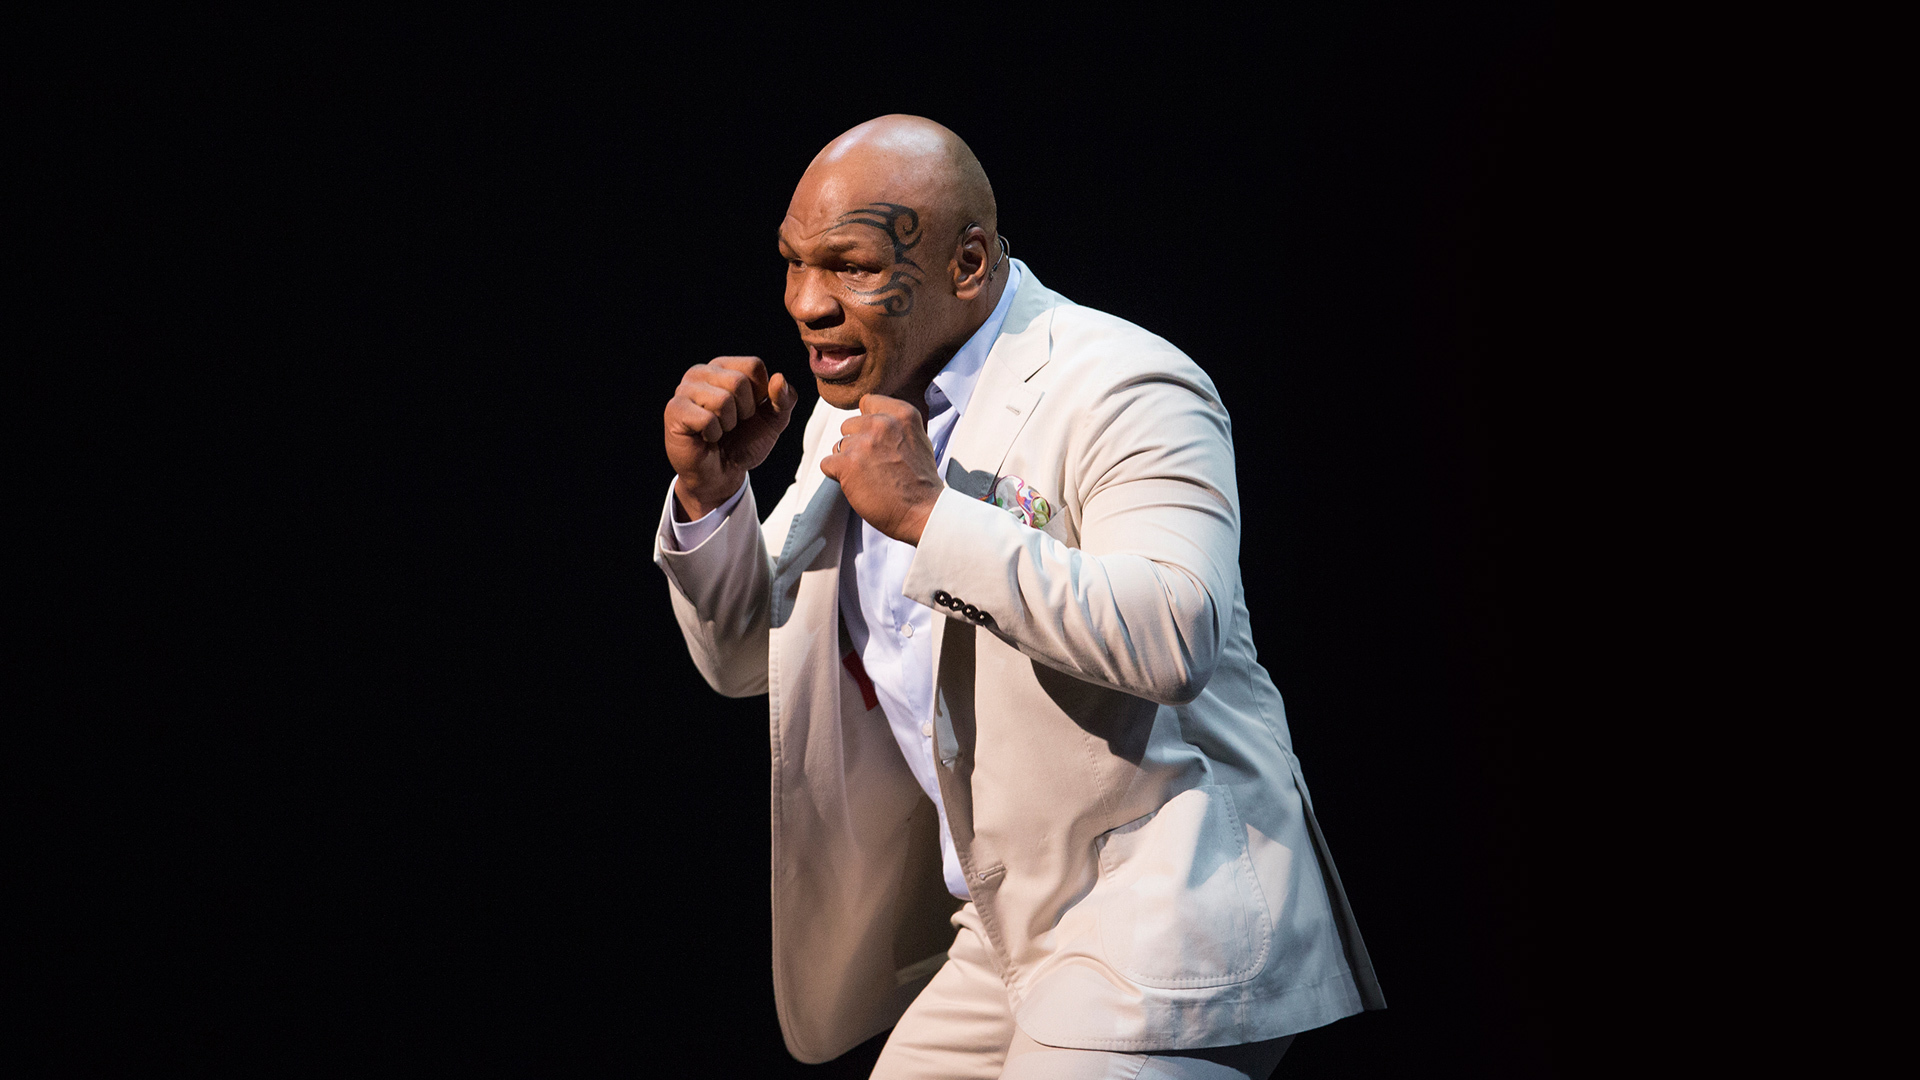 Mike Tyson High Definition Wallpapers